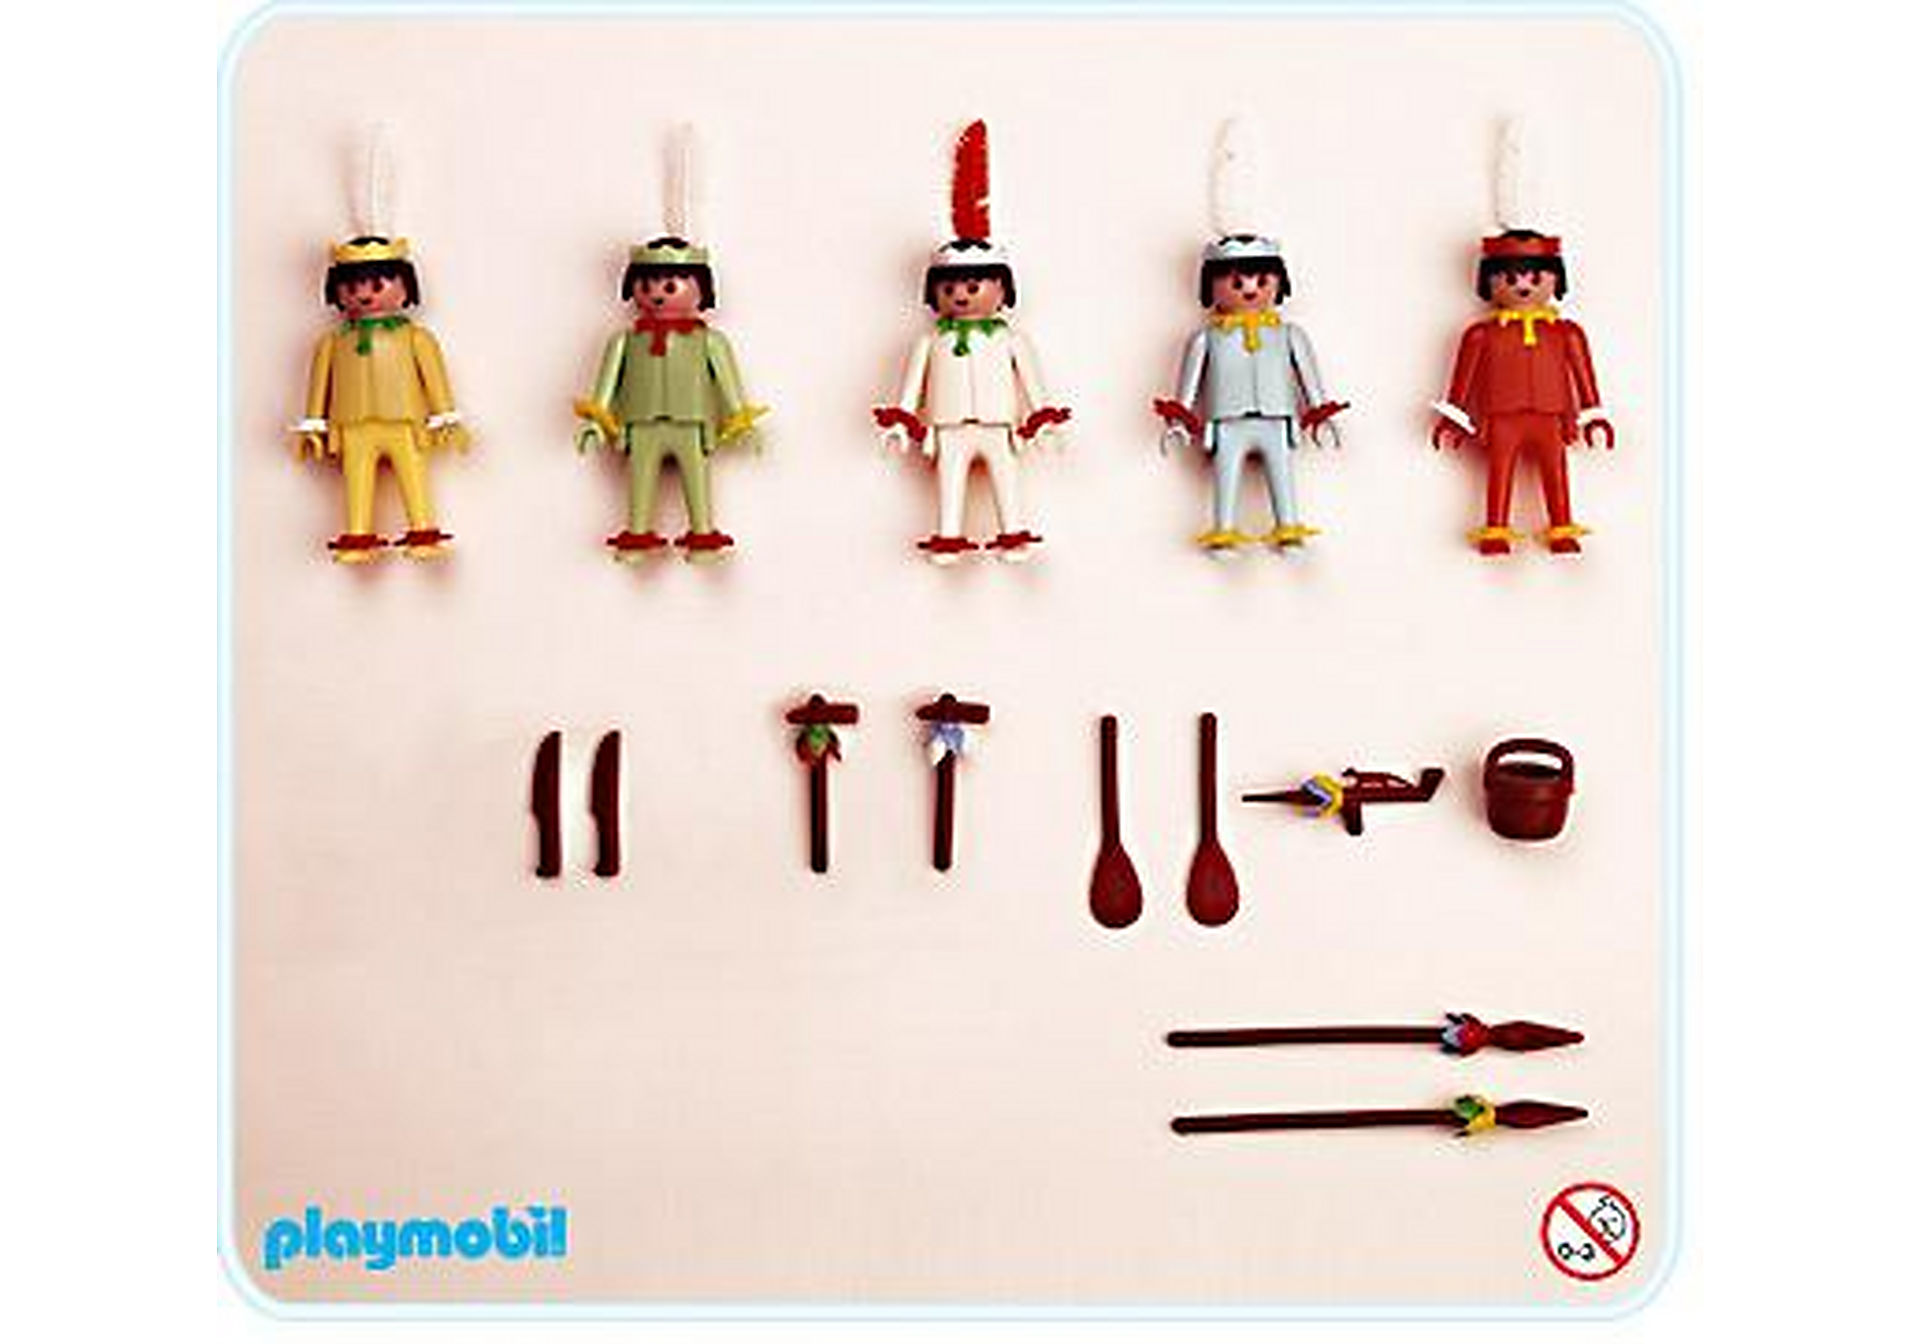 http://media.playmobil.com/i/playmobil/3120-A_product_detail/Accessoires d'Indiens